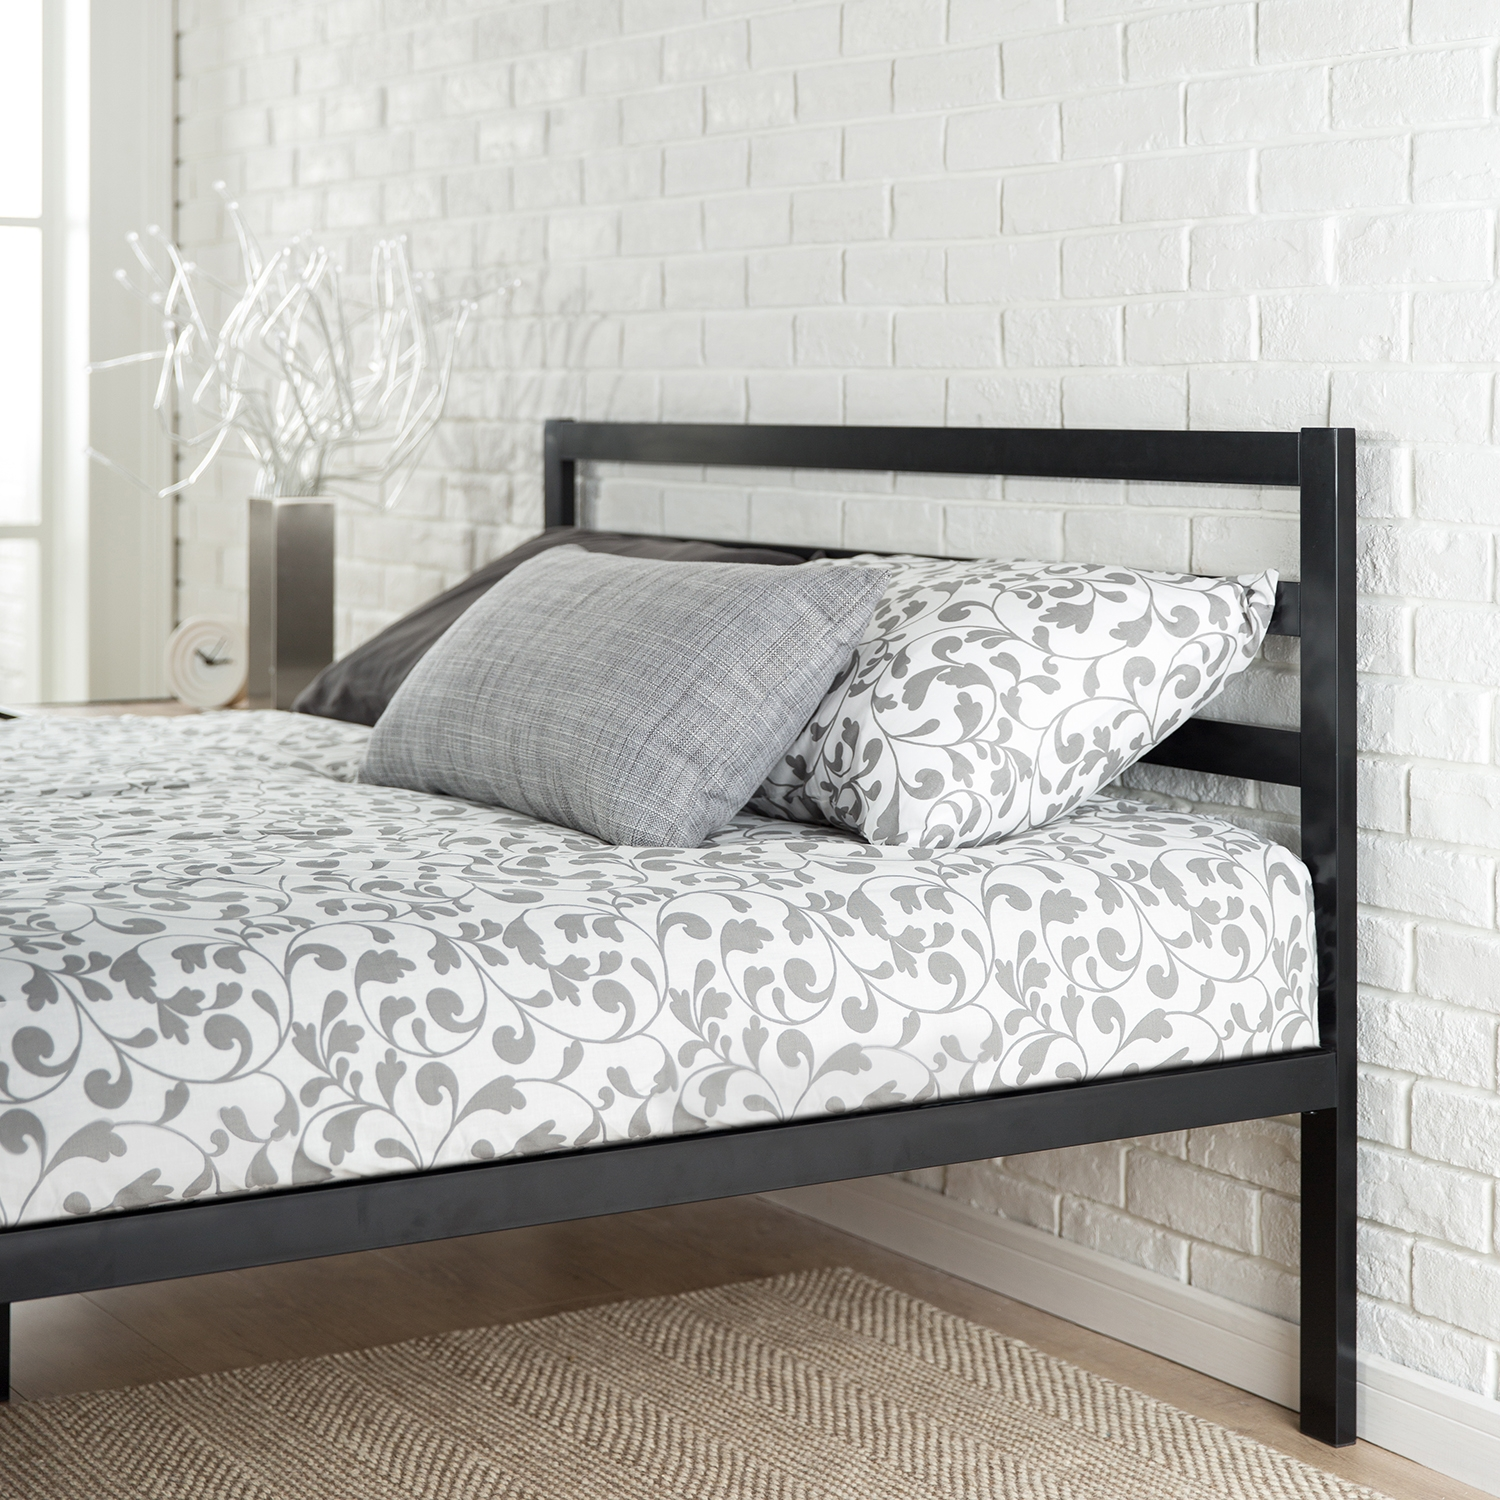 Difference Between Metal And Wood Bed Frames